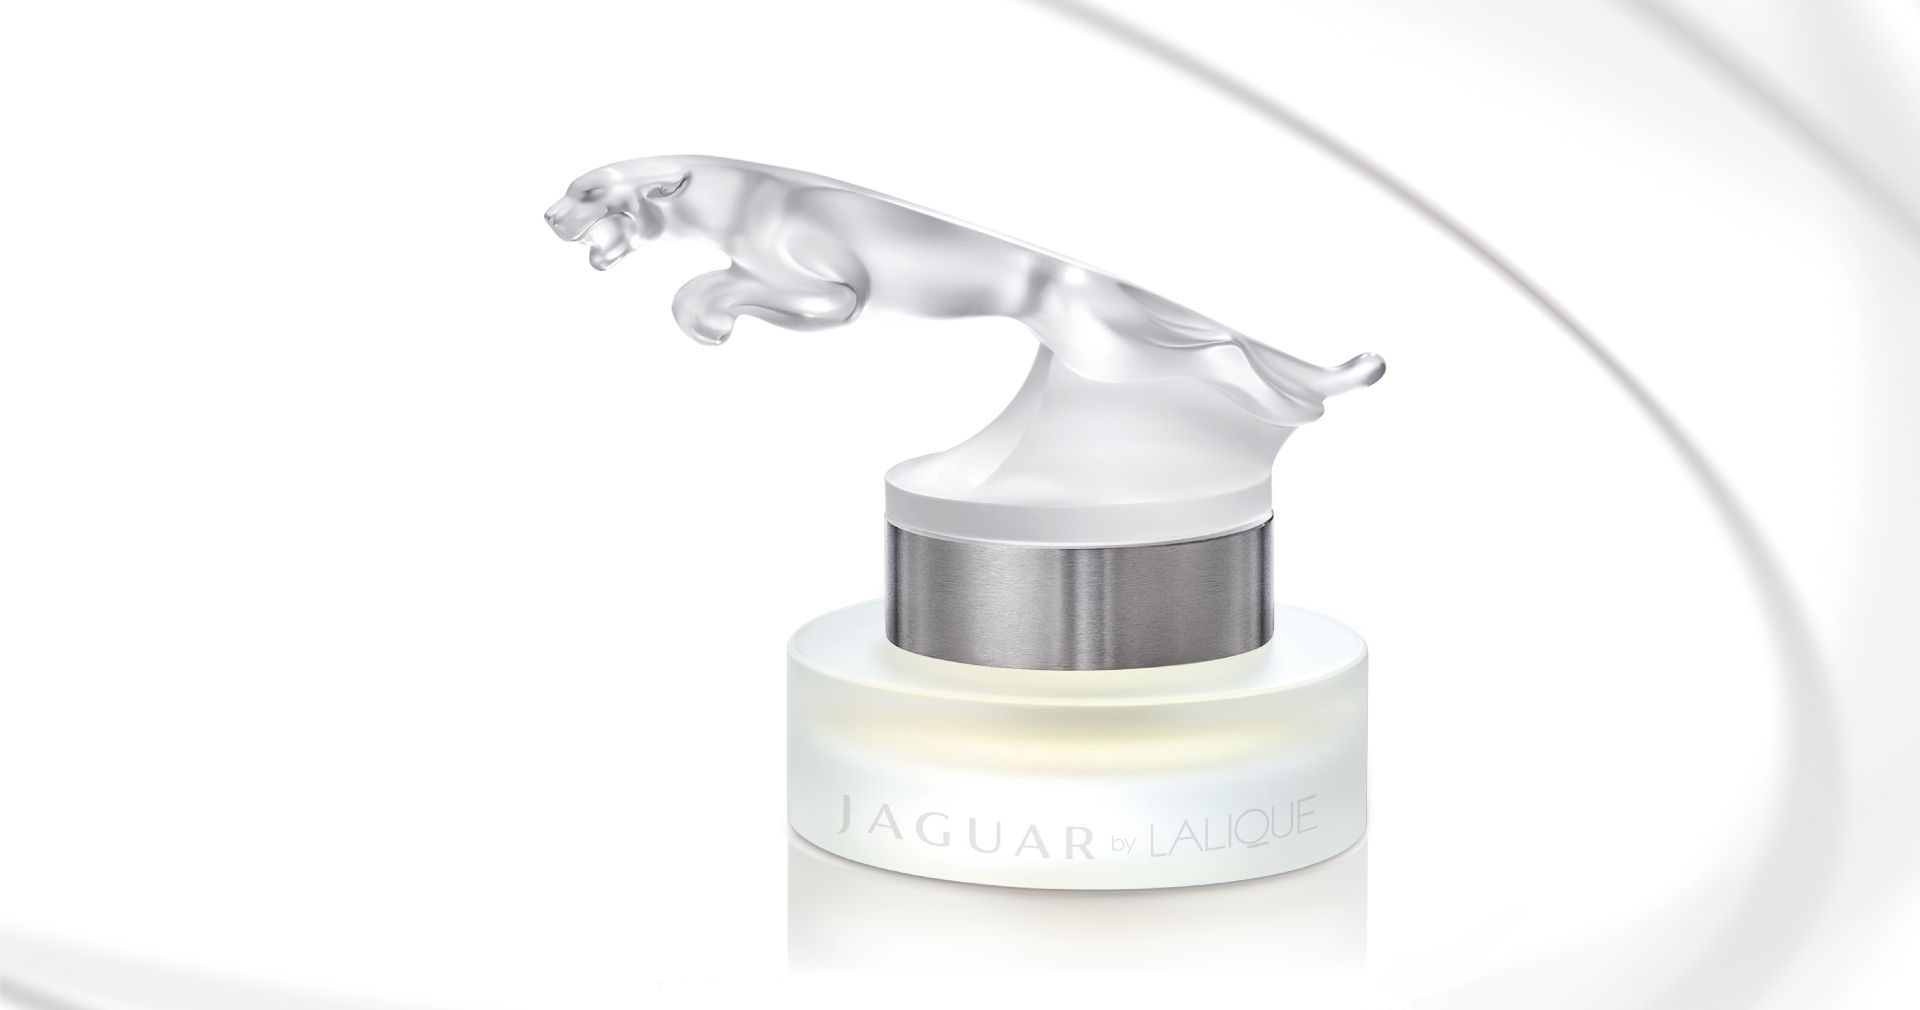 Jaguar by Lalique